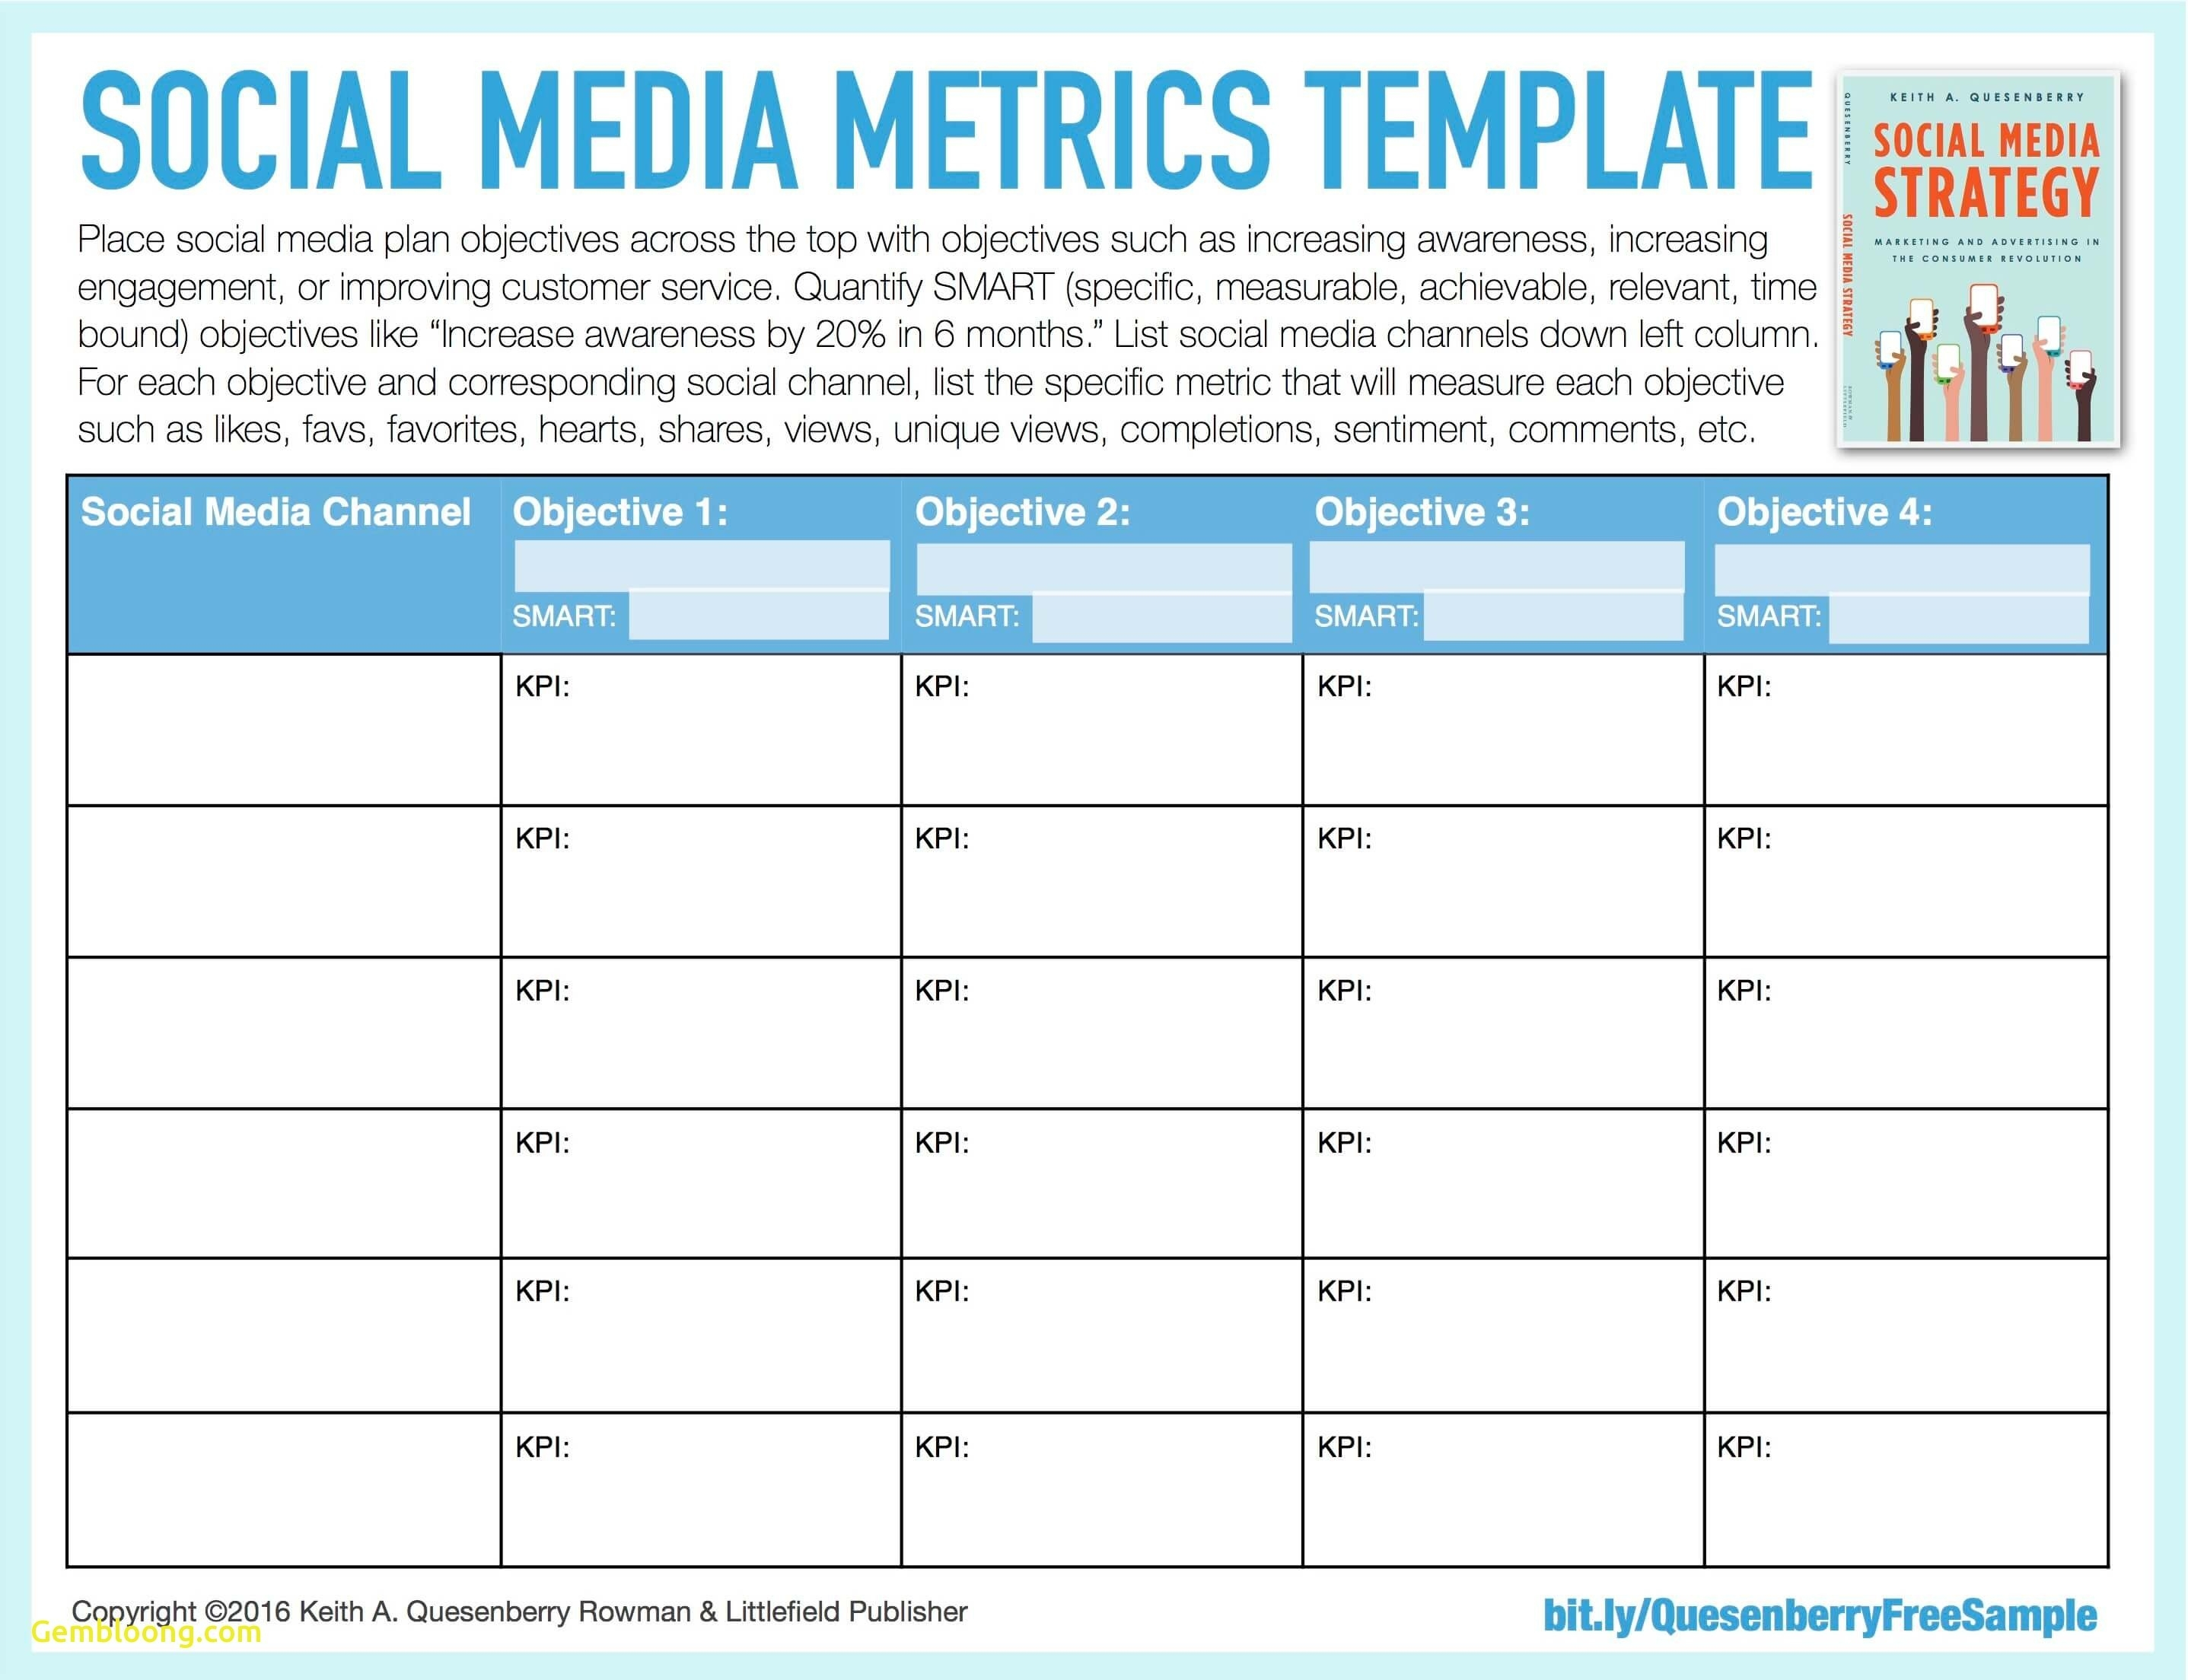 Social Media Strategy Template Develop Yourng Plan Marketing Free intended for Social Media Content Plan Excel Template Free